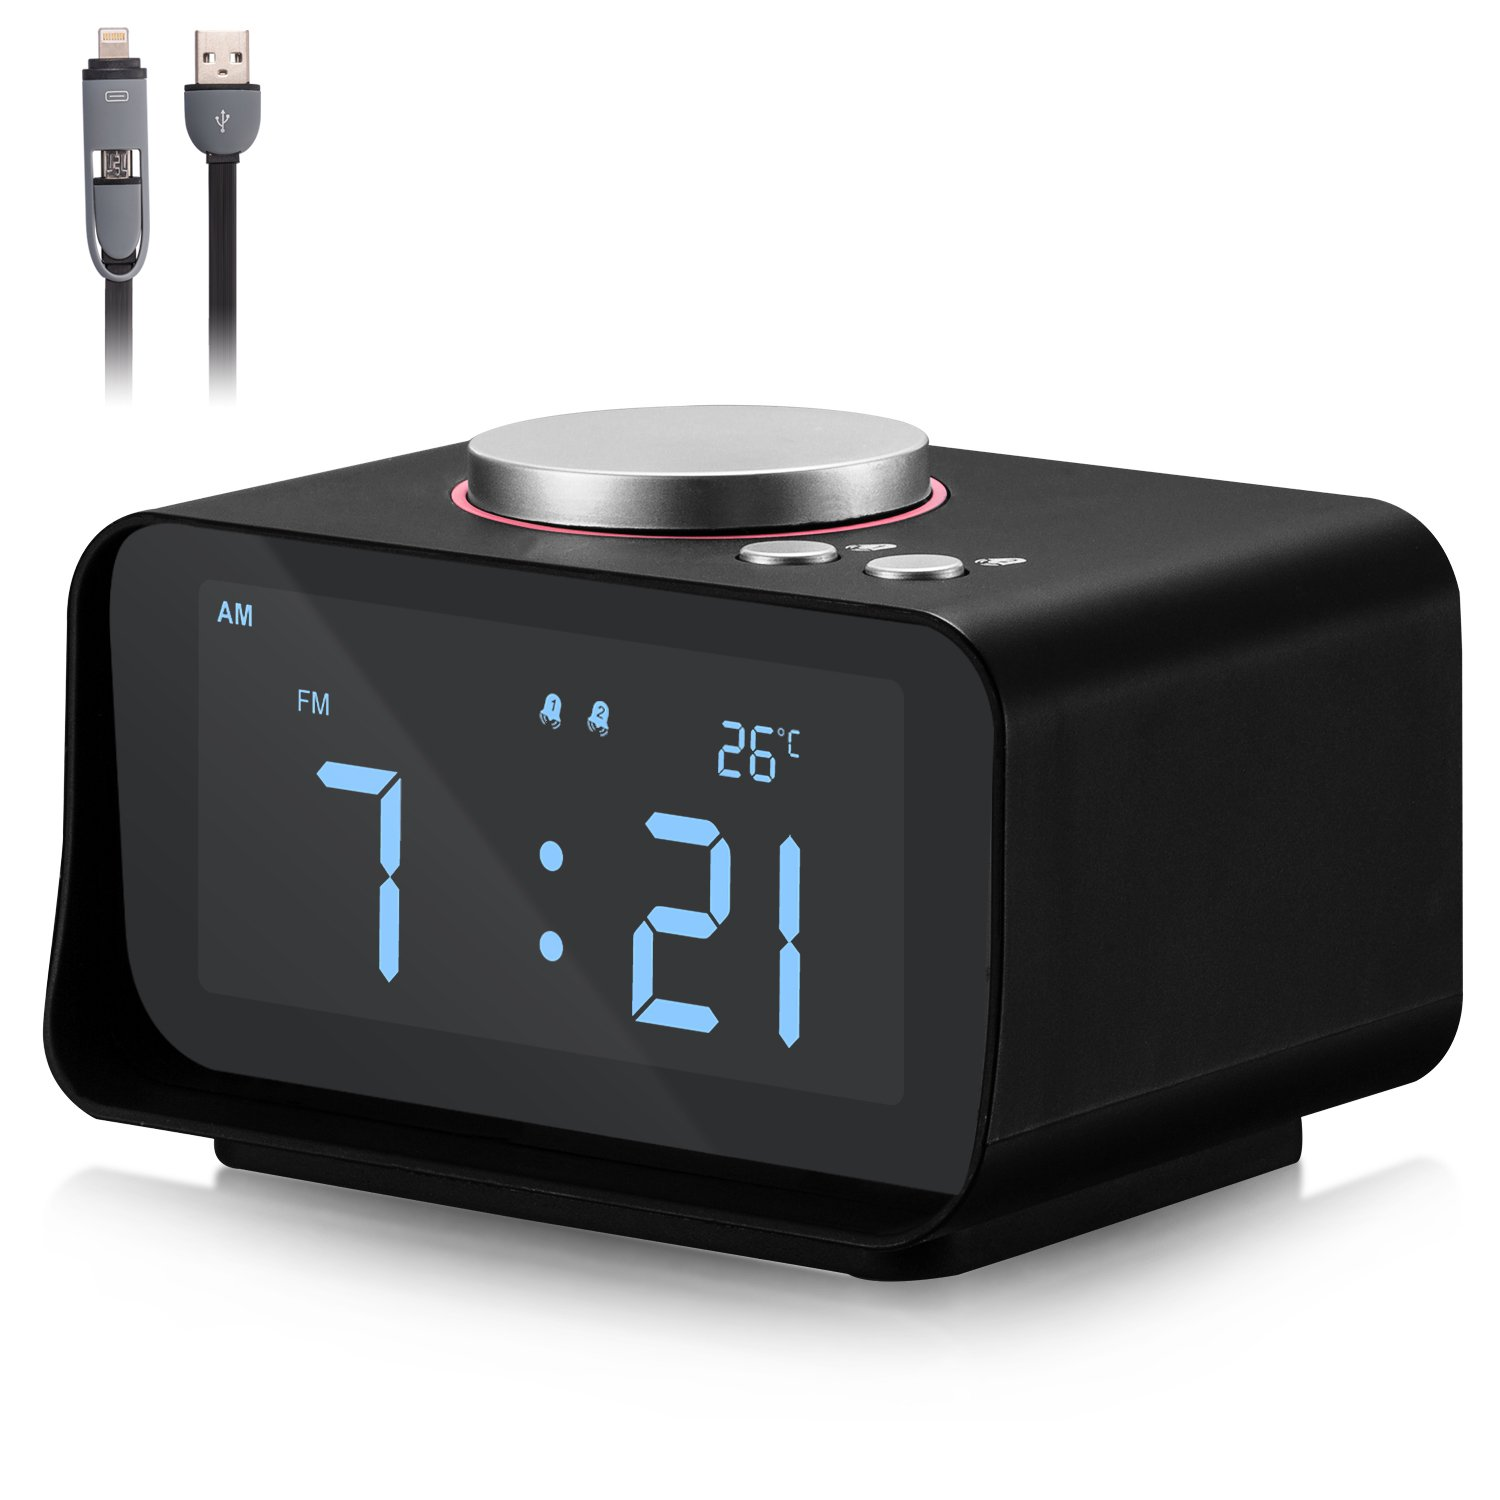 Fywonder Clock Radio with Dual USB Port, Loud Musical Dual Alarm with Snooze and Indoor Thermometer, Digital Alarm Clock for Bedroom Iphone/Ipad/Ipod/Android Phone and Tablets …